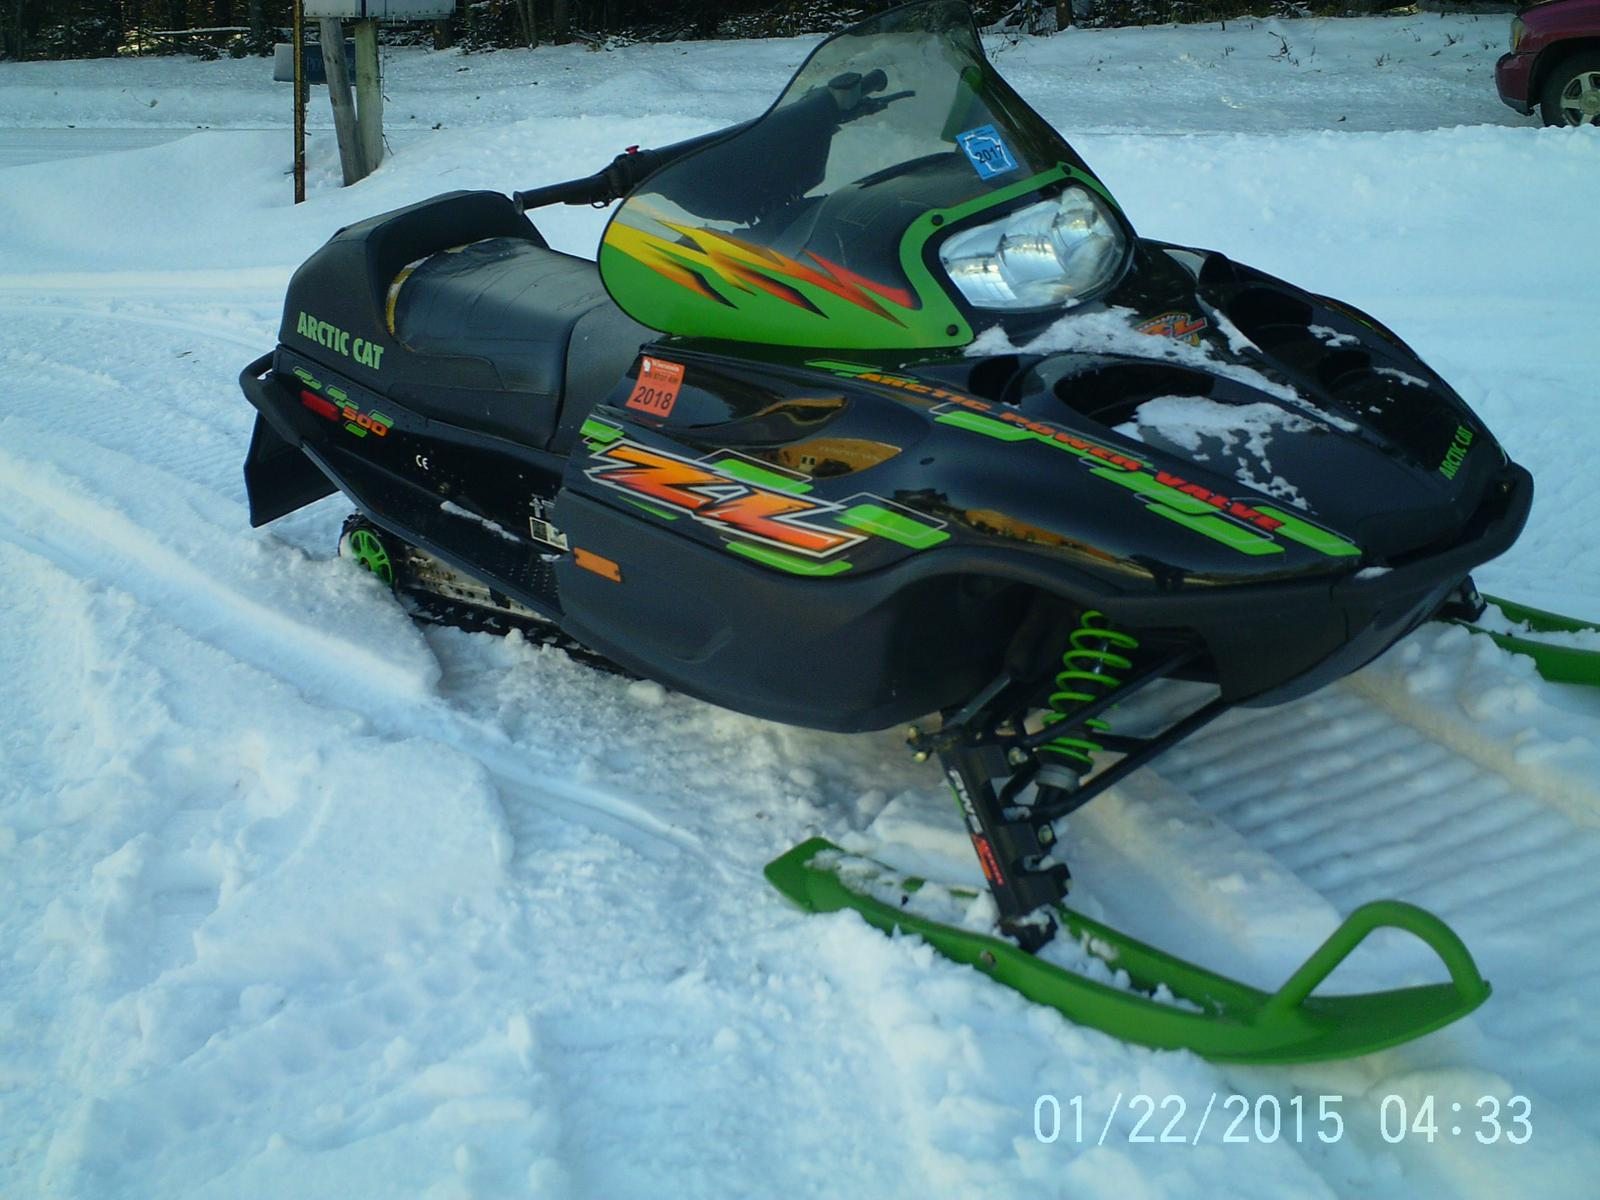 Used Snowmobiles From Arctic Cat FOUR STAR SPORTS WEBB LAKE WI 715